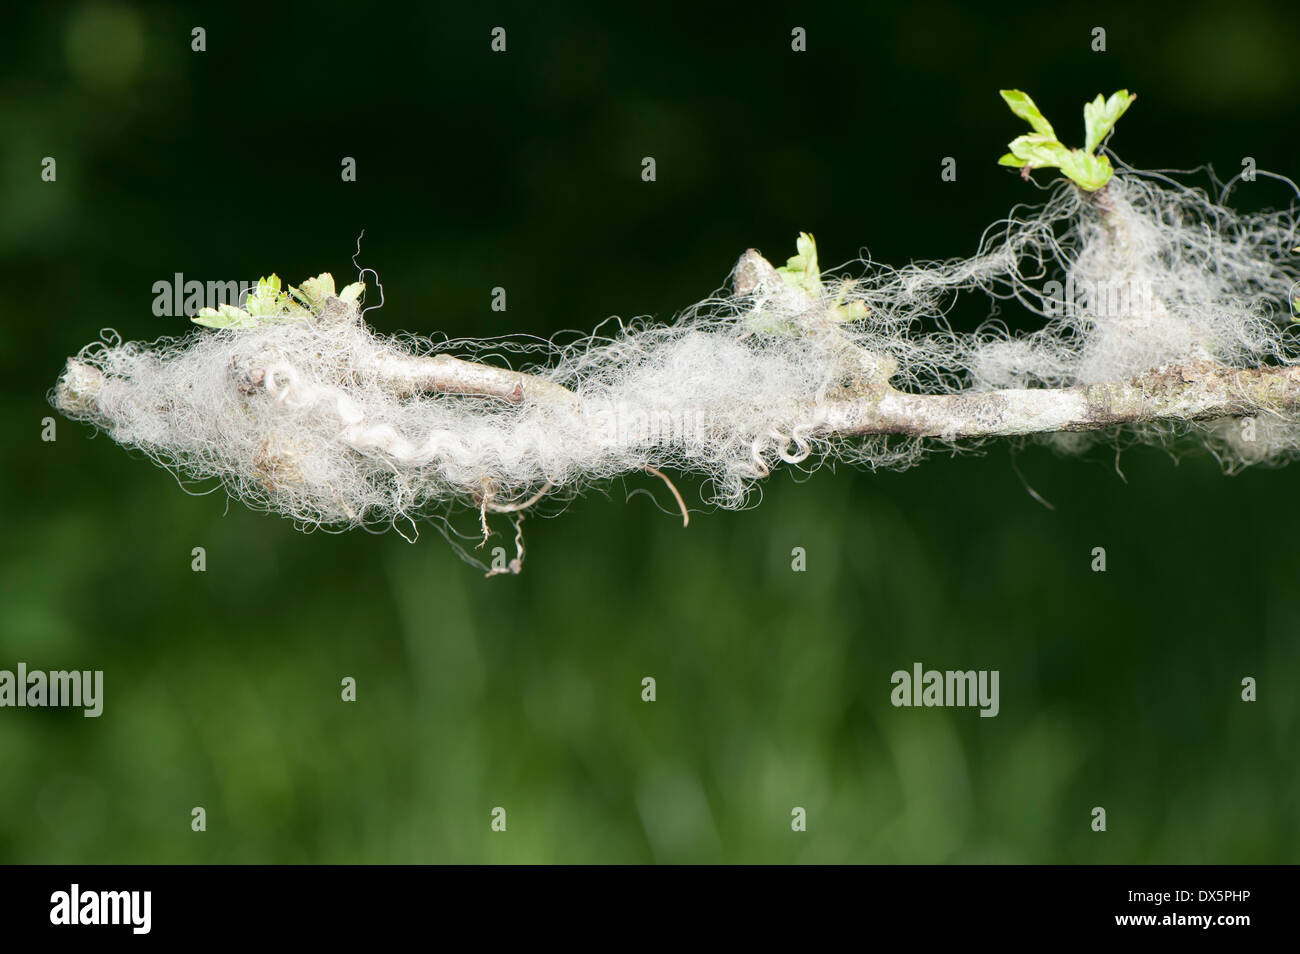 Sheeps wool caught on a thorn branch in a hedge. Cumbria, UK - Stock Image